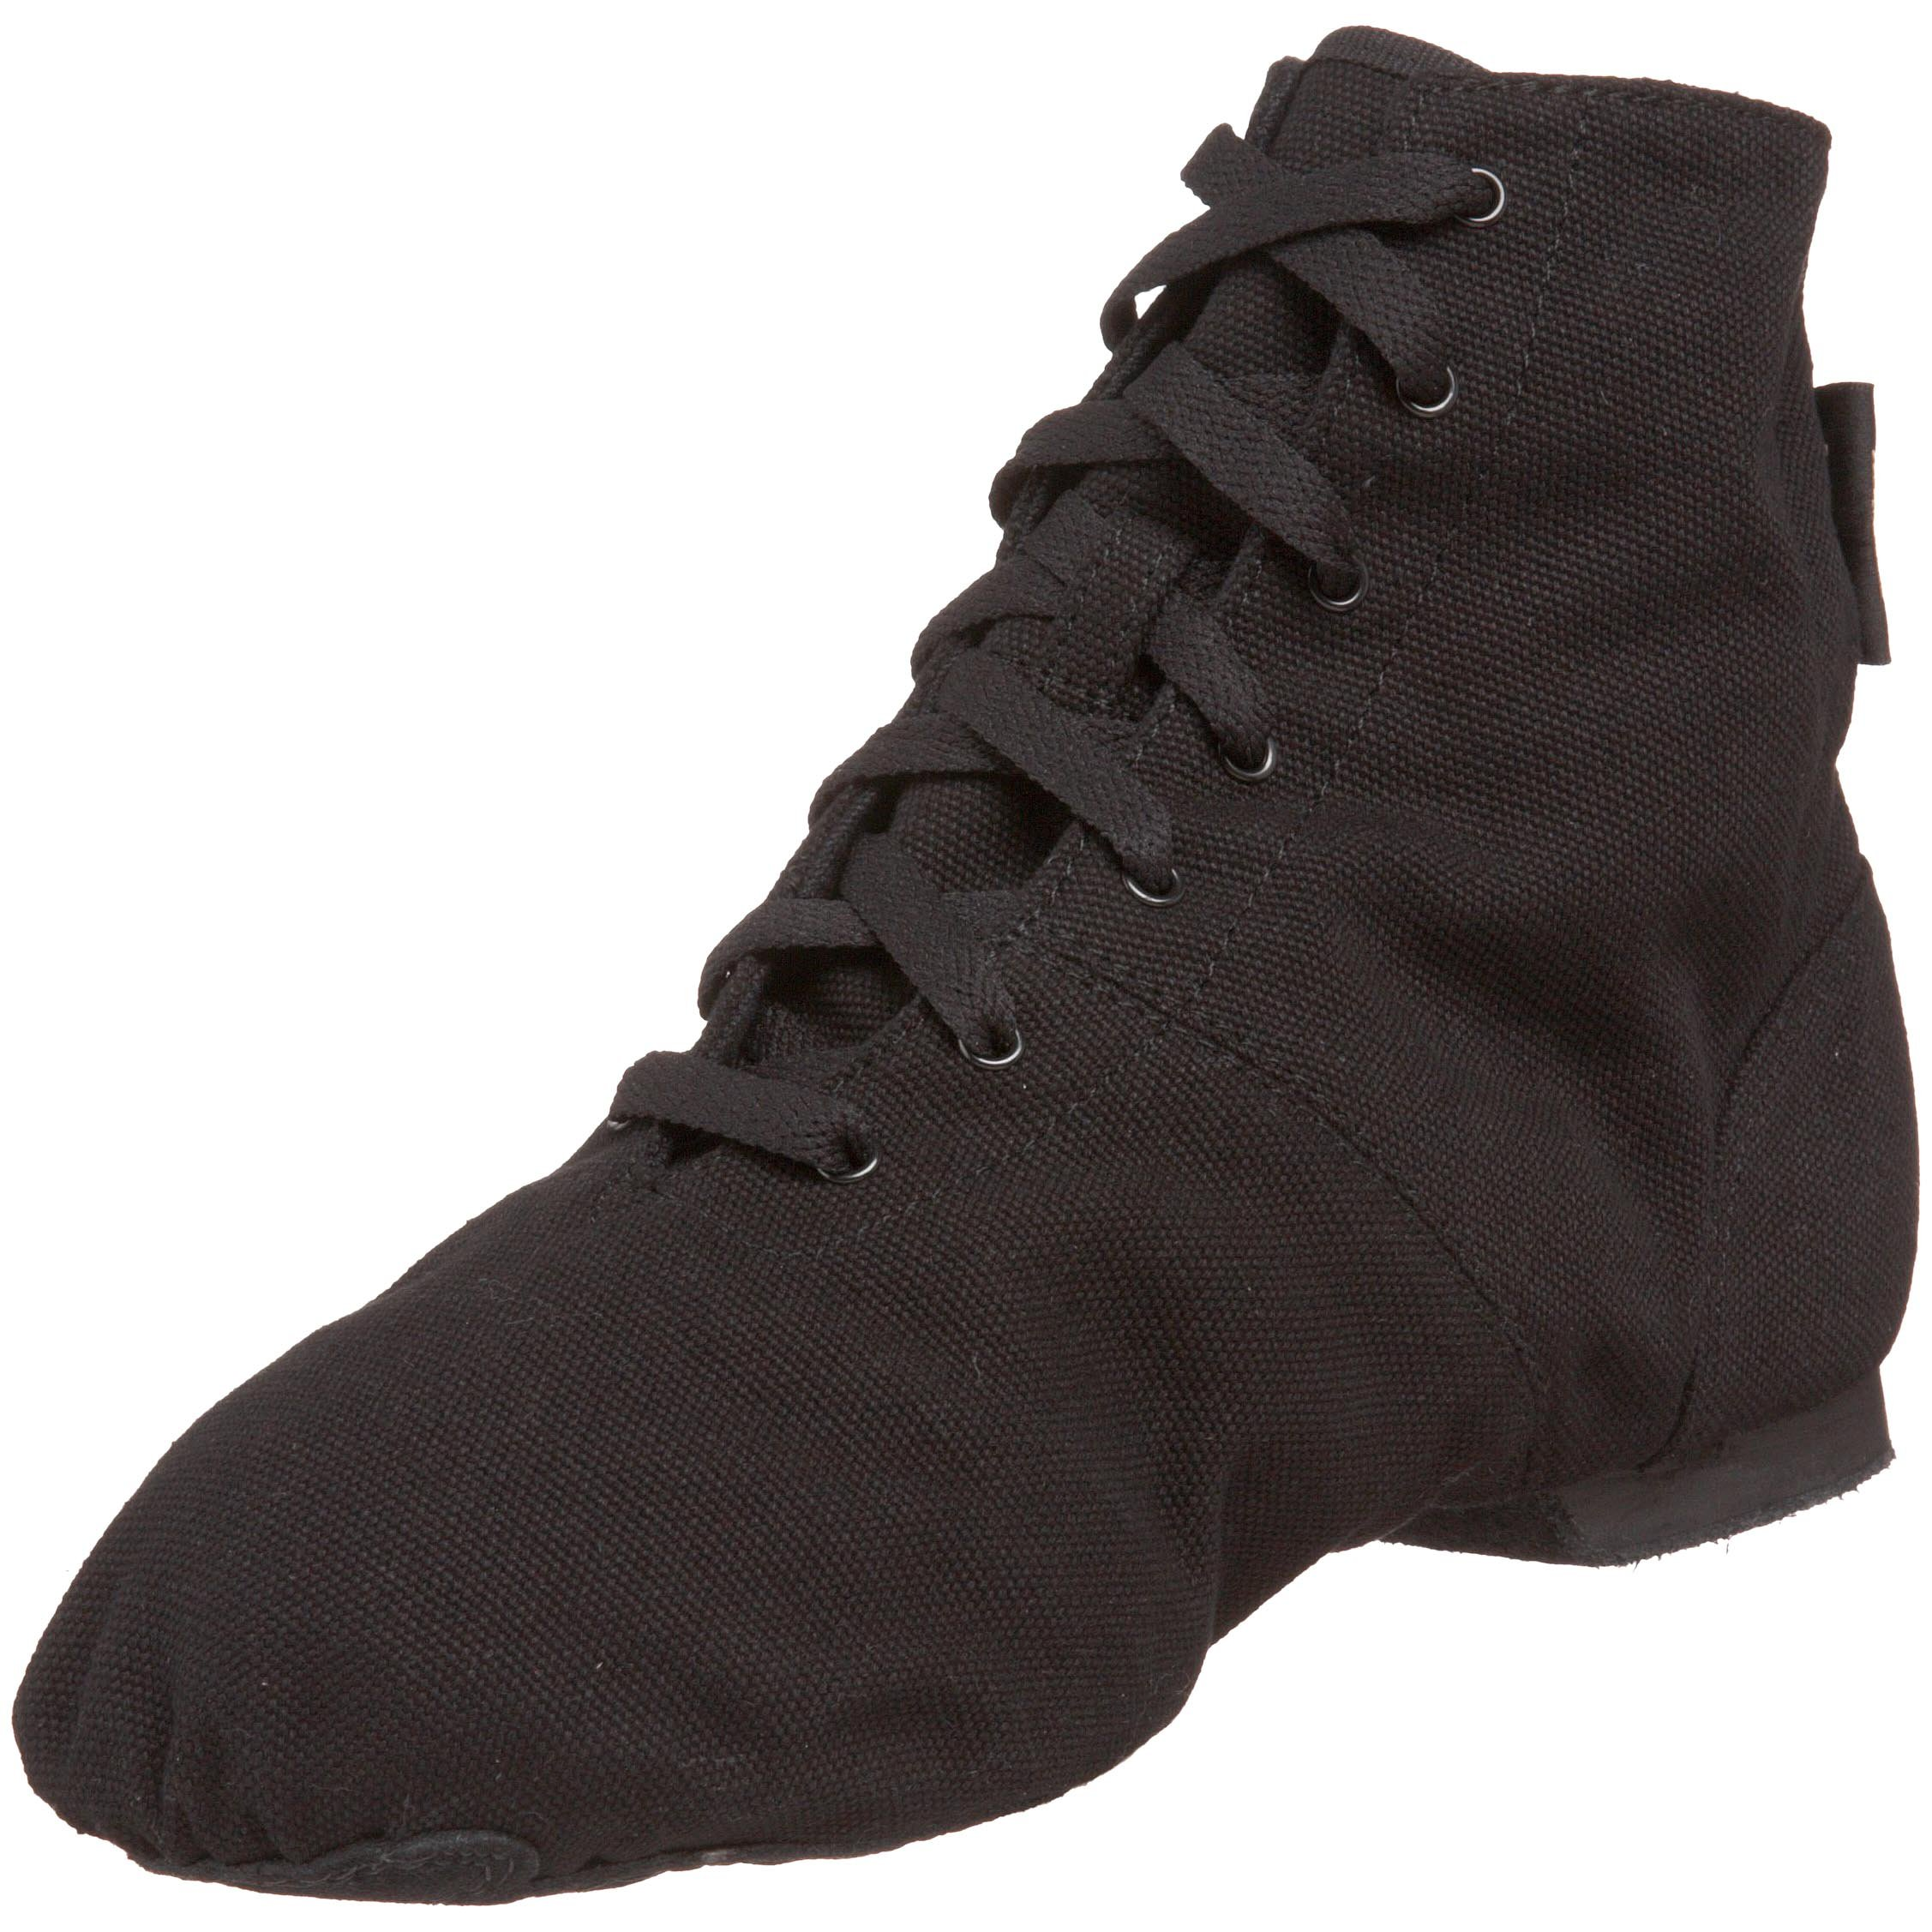 Sansha Soho Lace-Up Jazz Shoe,Black,10 M US Women's/6 M US Men's by Sansha